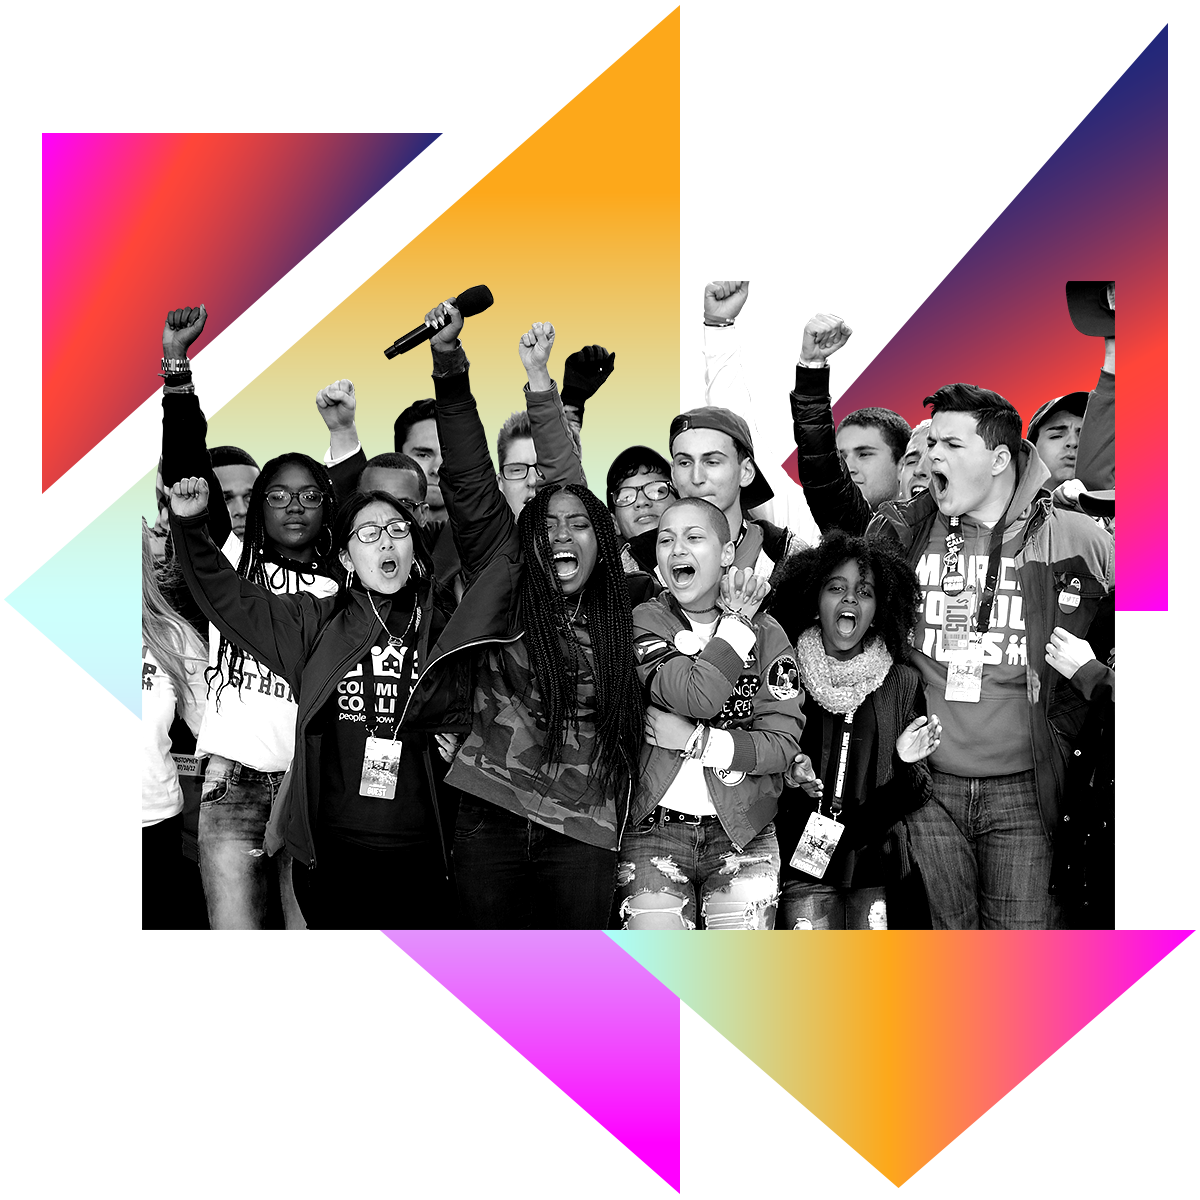 Photo illustration of a group of students with their fists in the air at the  March 4 Our Lives in black and white surrounded by colored gradients